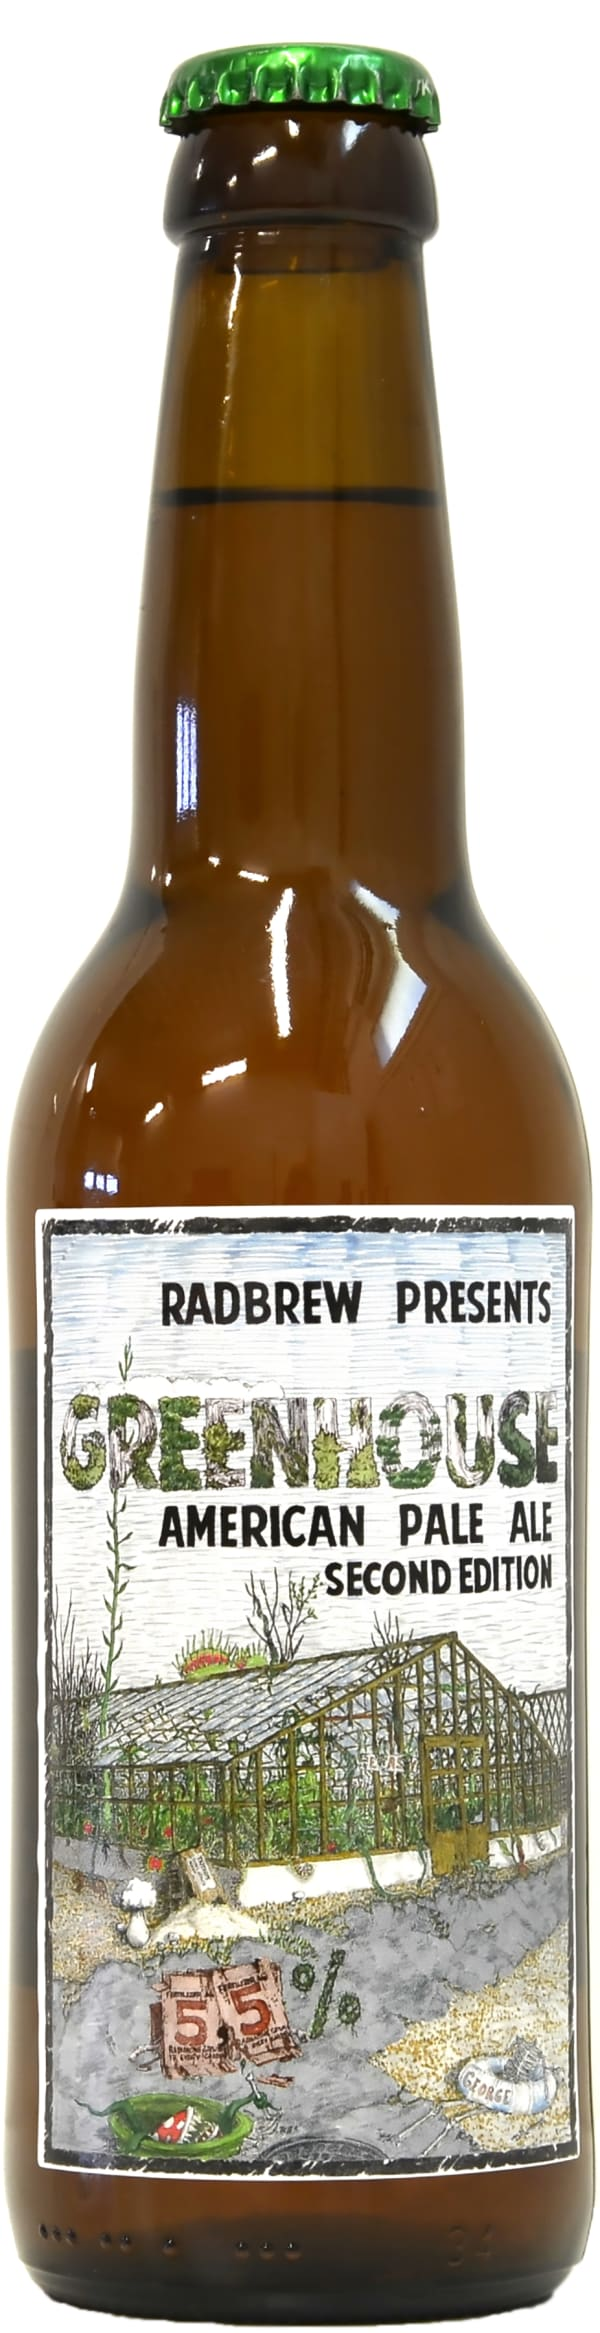 Radbrew Greenhouse Second Edition